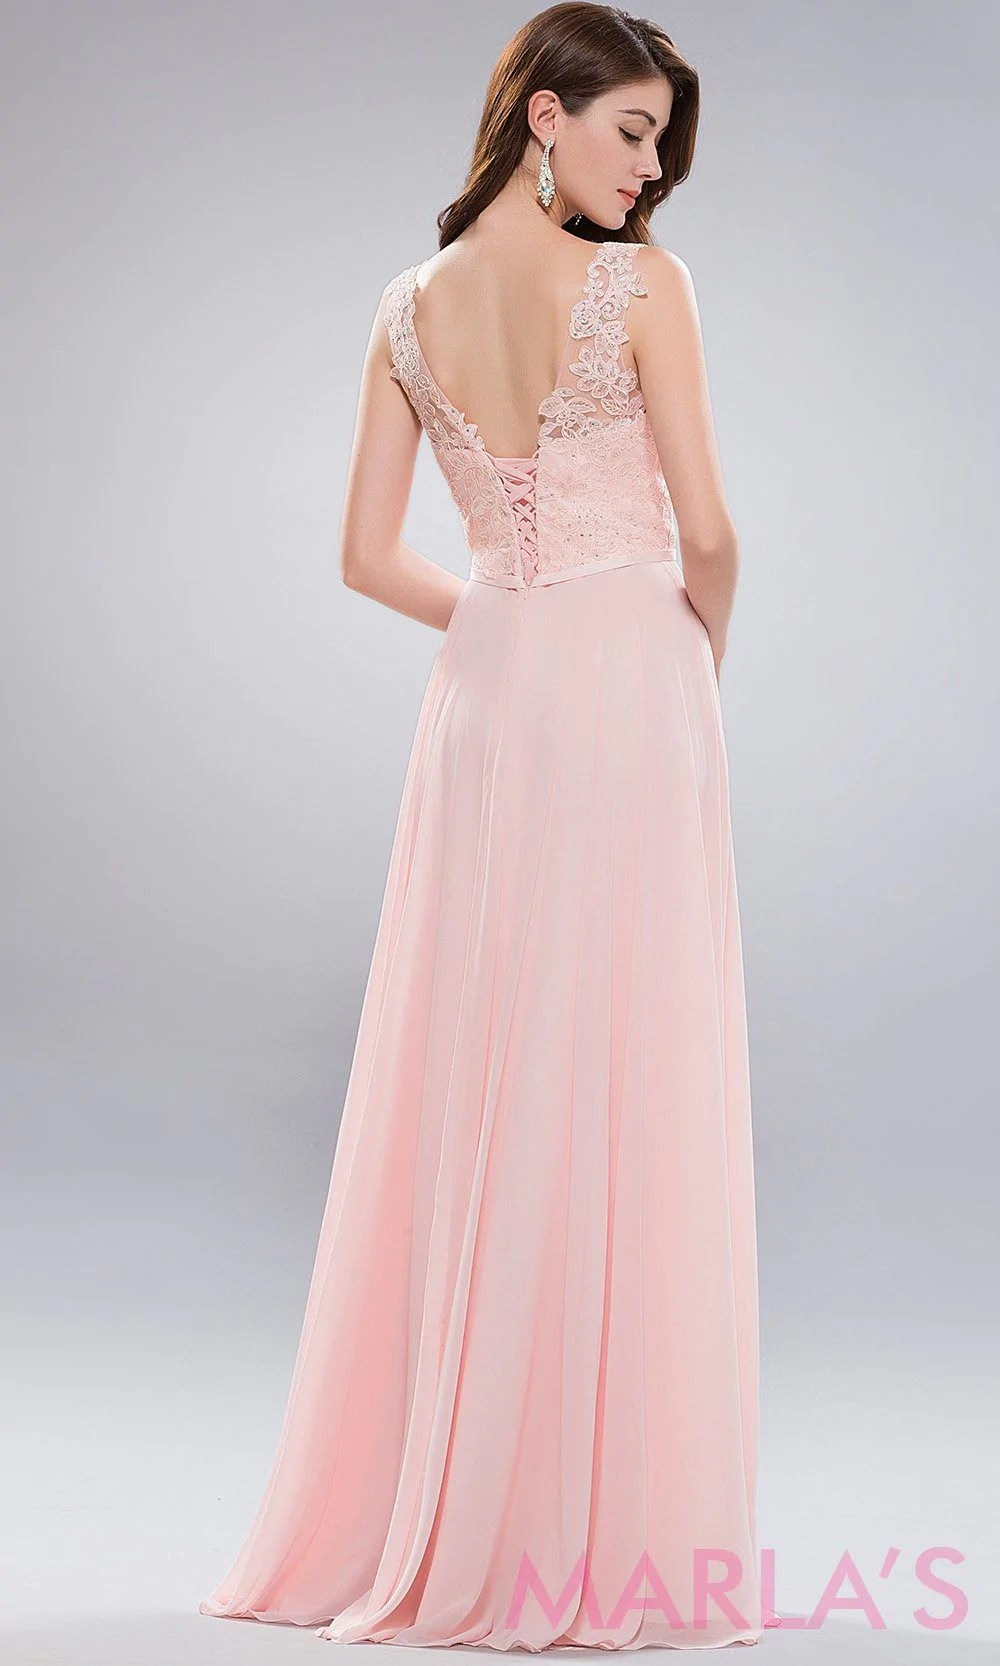 daadc9abdb4 20+ Pink Flowy Wedding Dresses Pictures and Ideas on Meta Networks